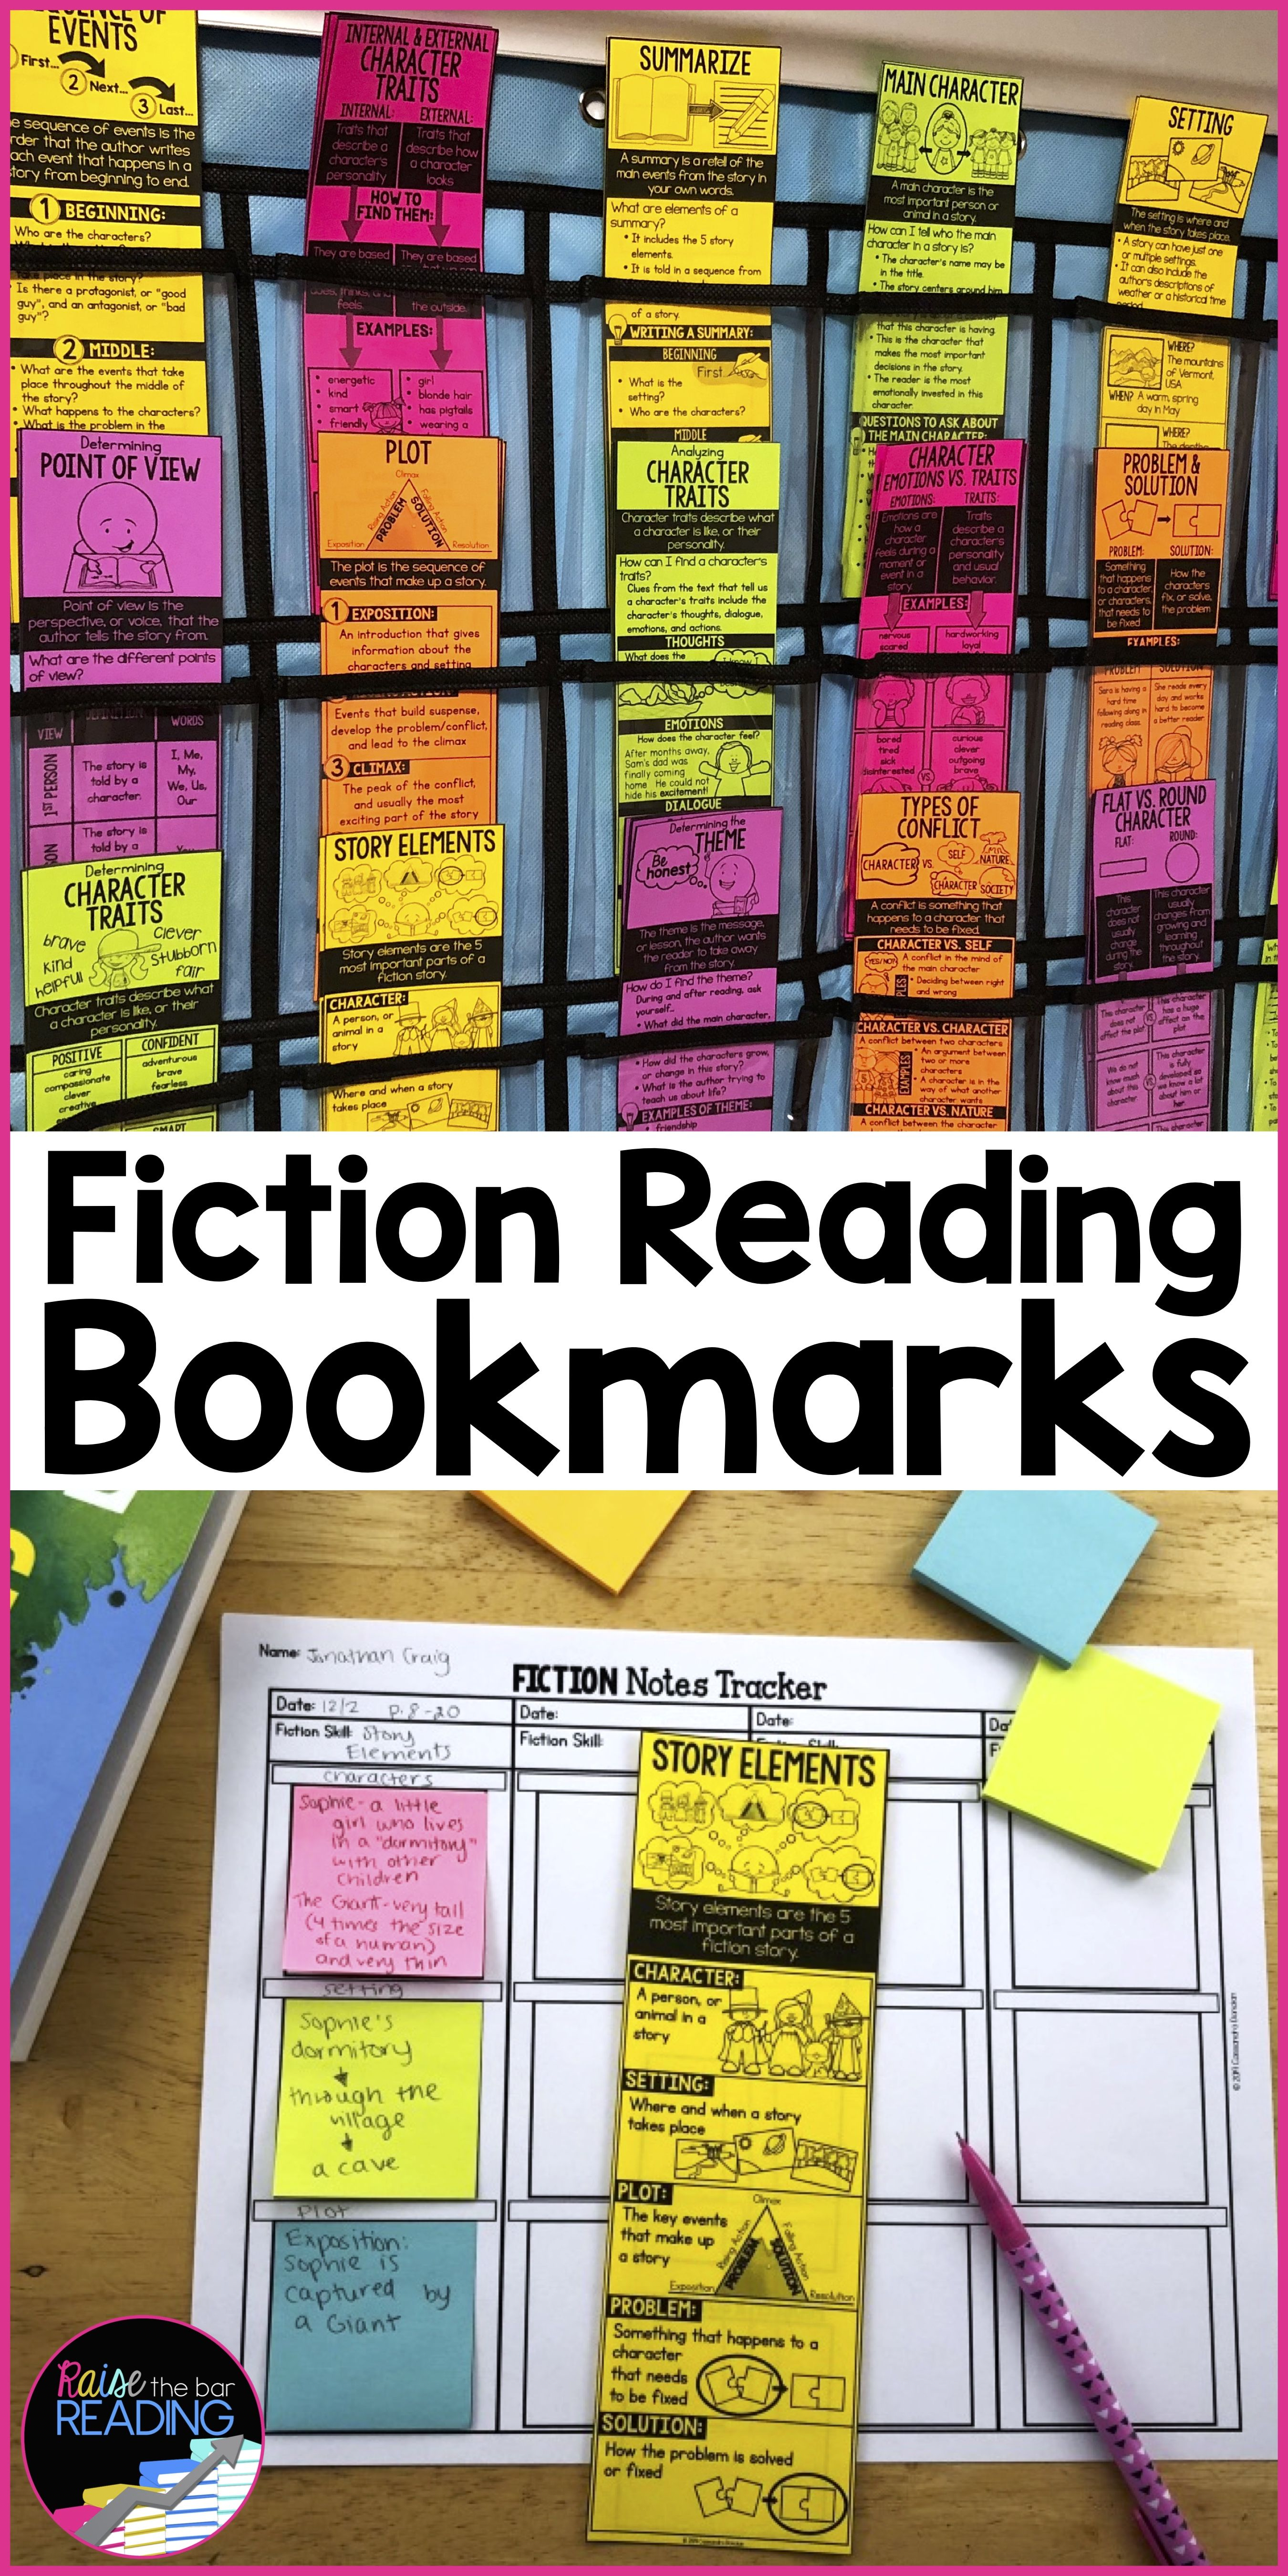 Fiction Reading Bookmarks For Fiction Reading Response